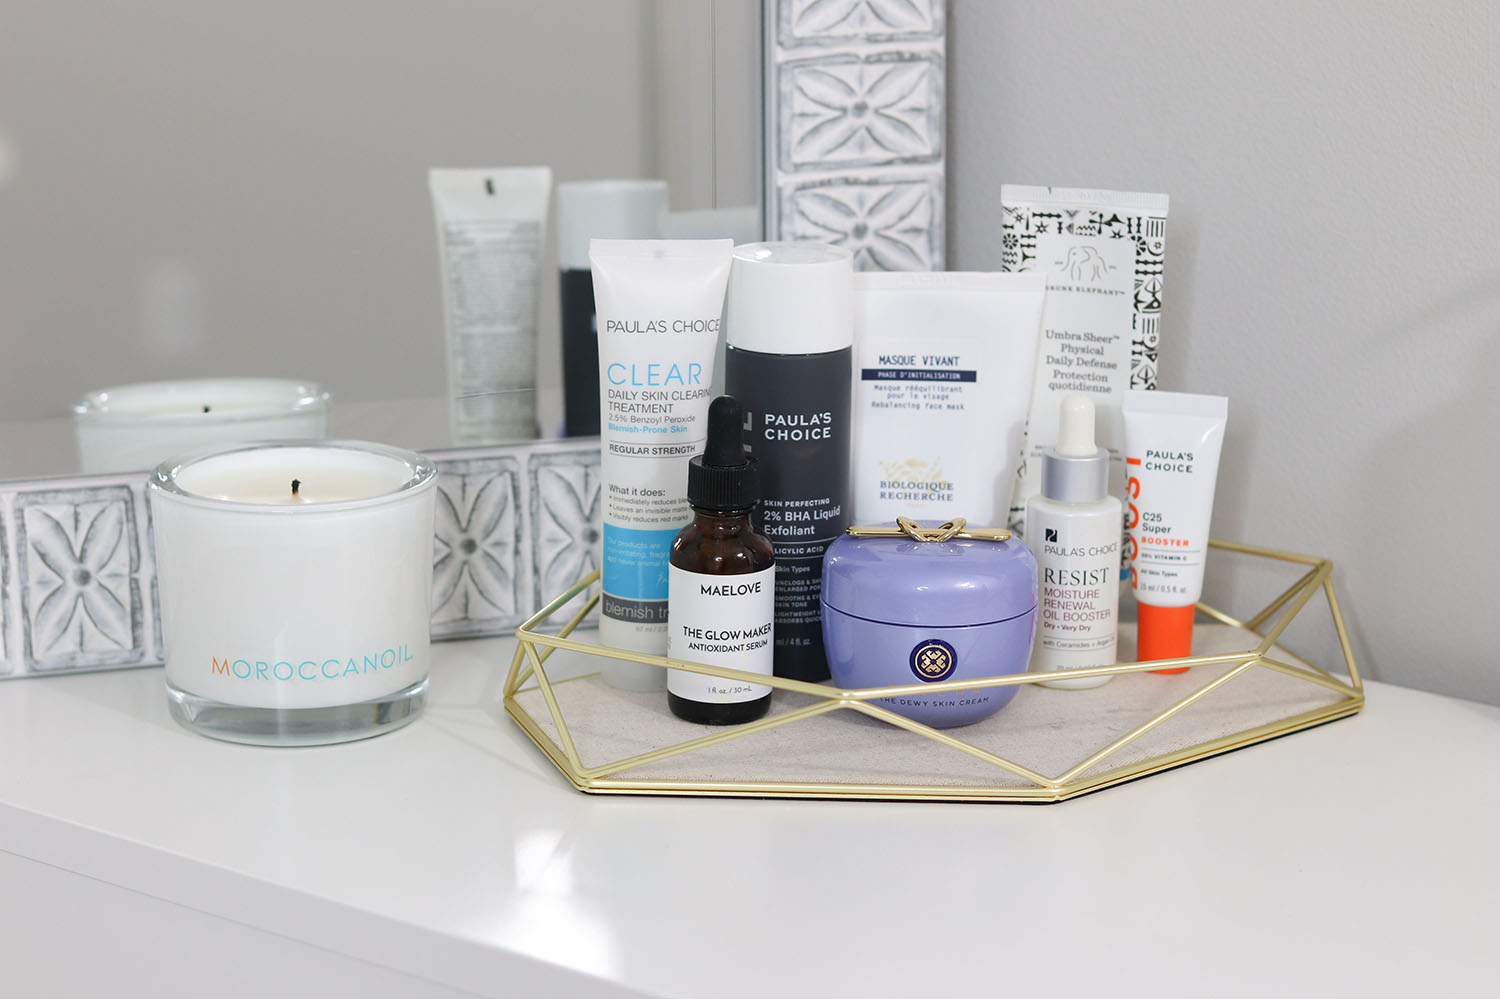 How I Clear My Skin When I'm Having a Breakout | Skin care products used to heal breakouts from Paula's Choice, Tatcha, Drunk Elephant and Biologique Recherche